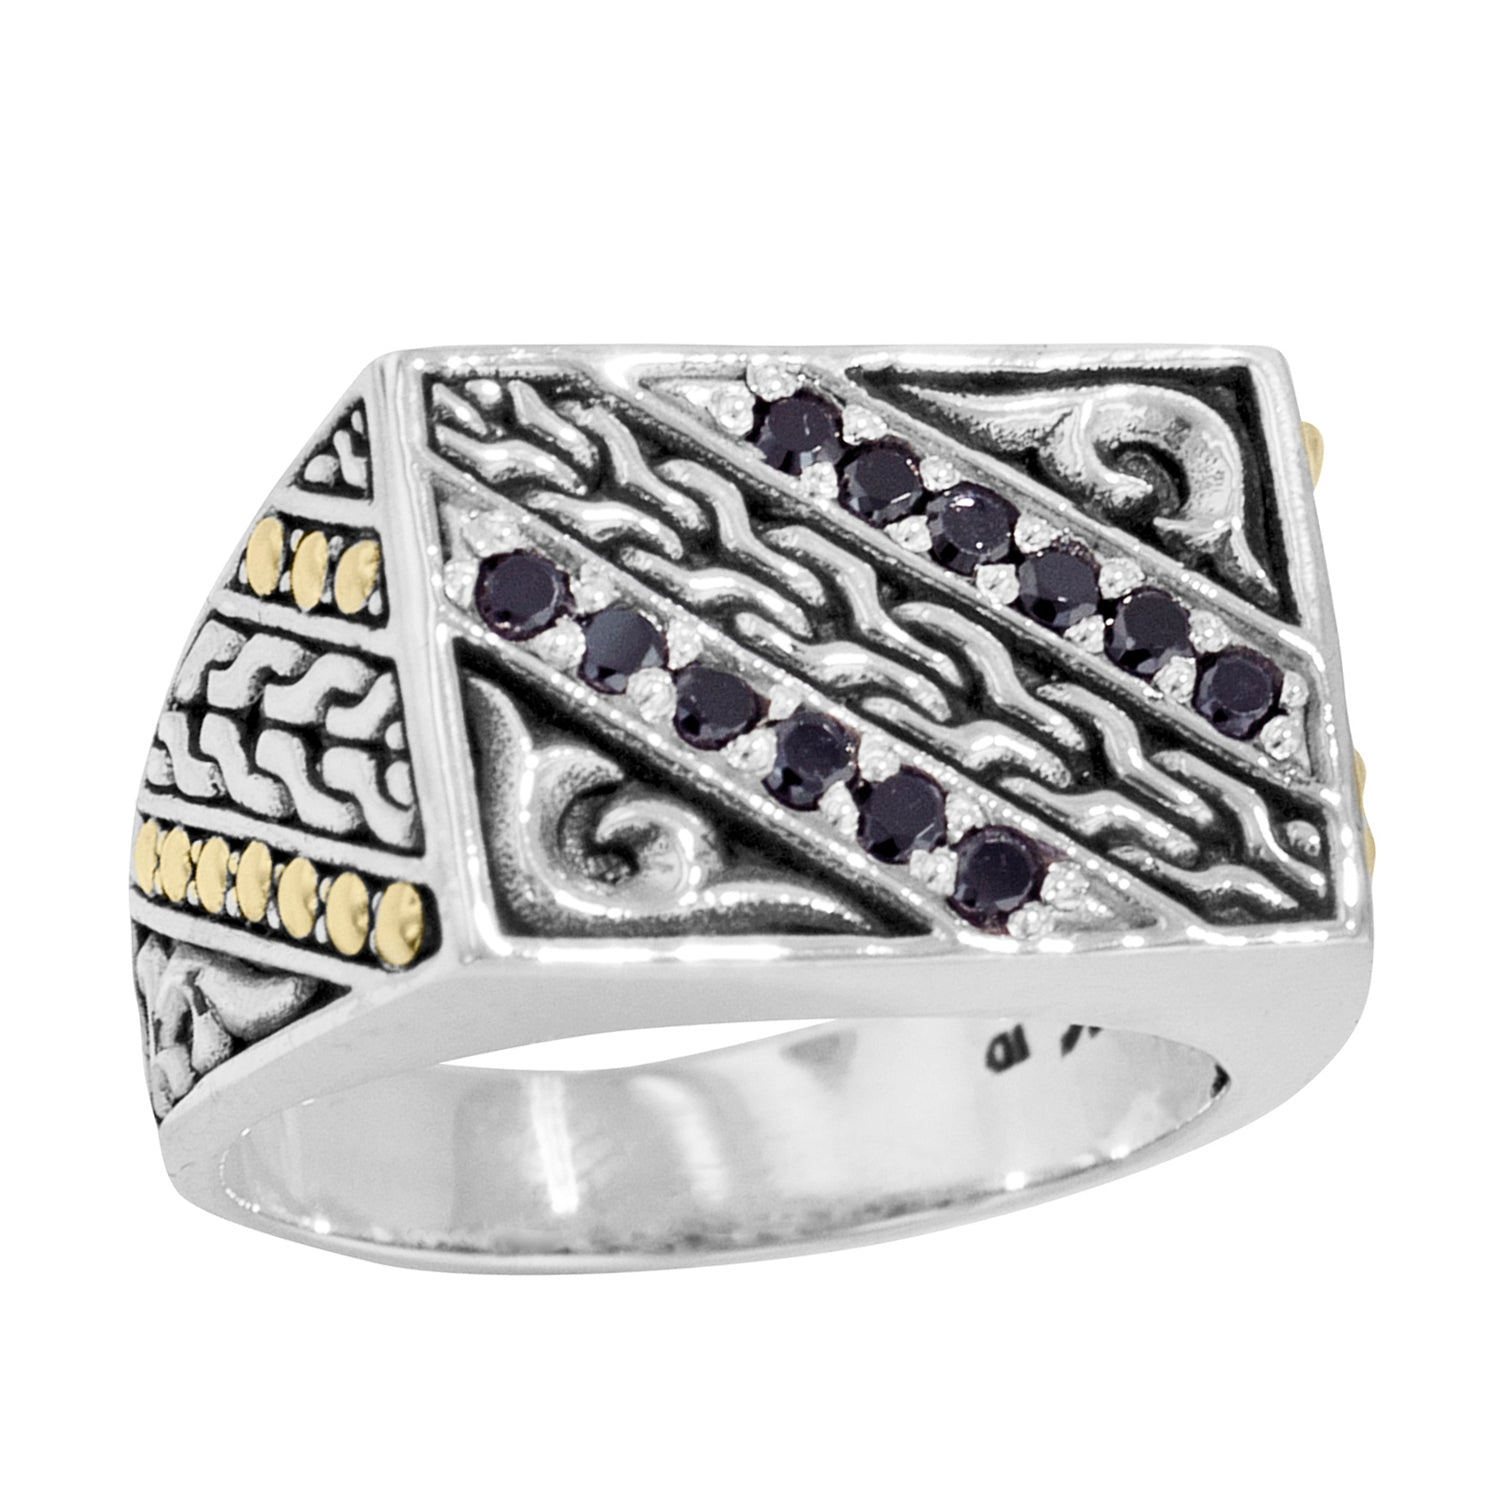 Men's Sterling Silver Black Zircon Ring with 18K Gold Accents